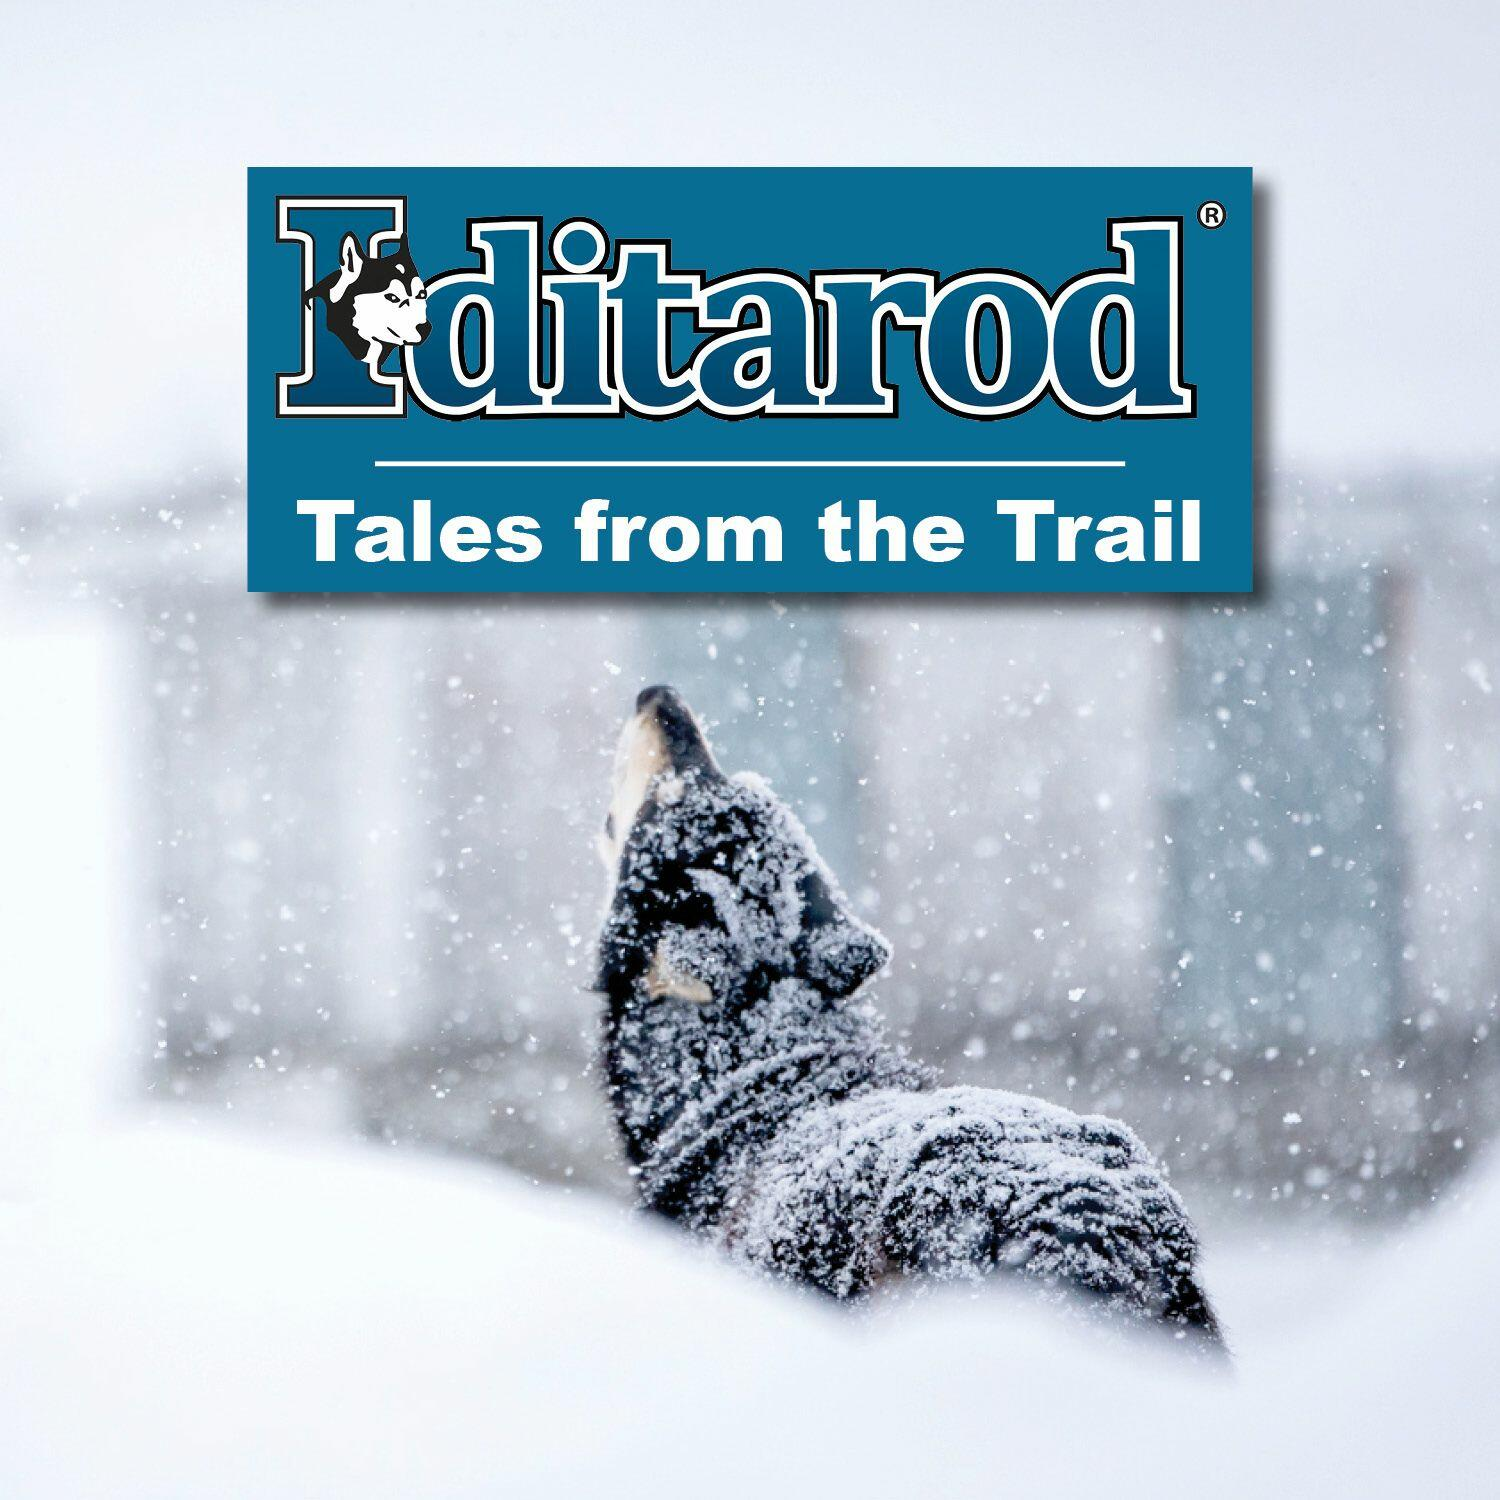 The Iditarod Tales from the Trail